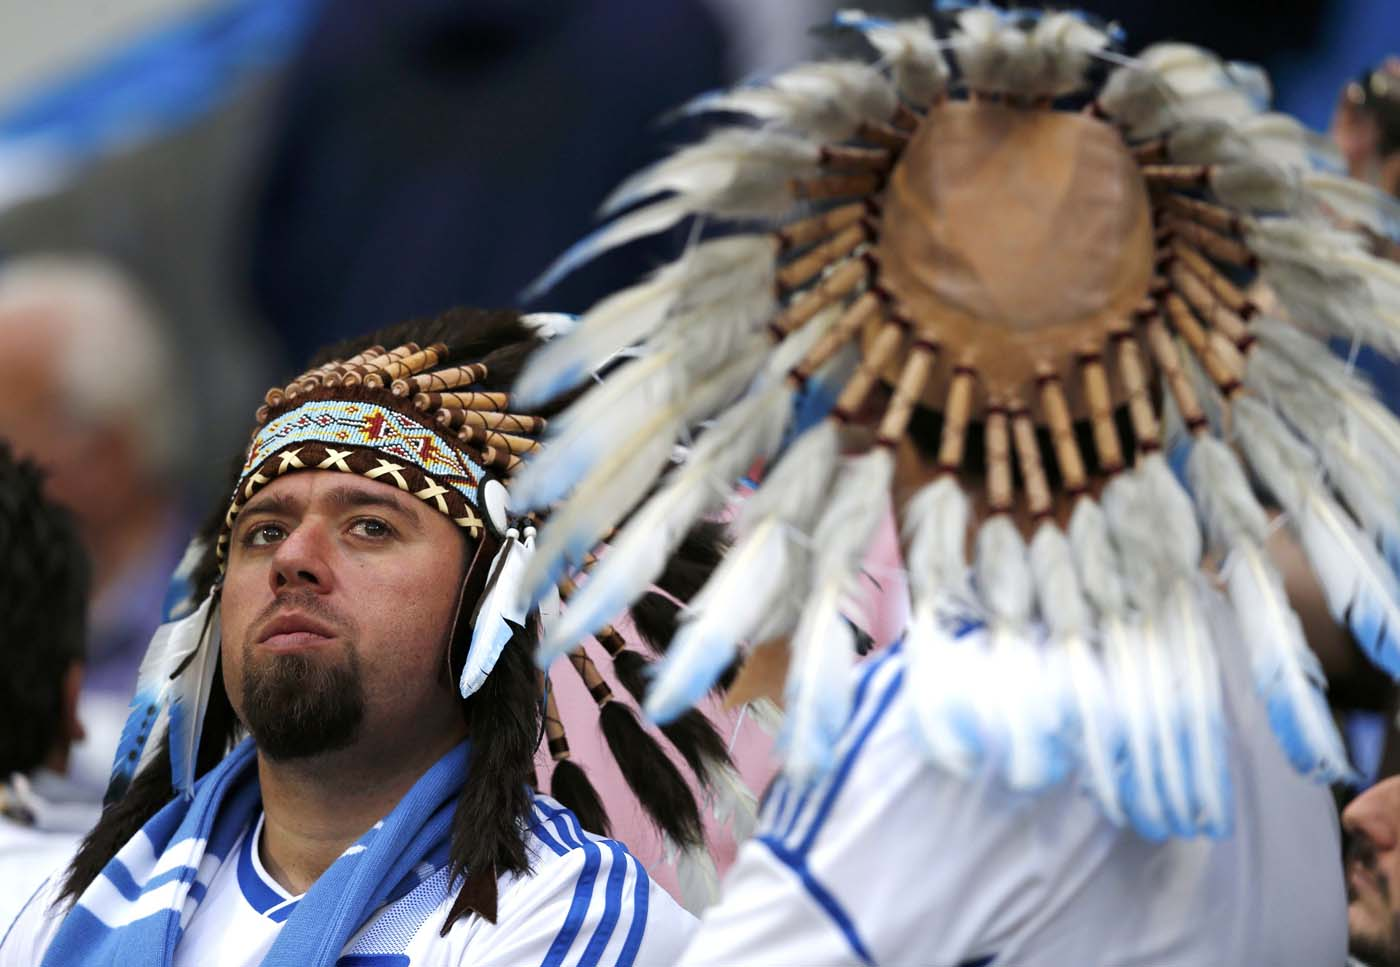 Greece's fan looks dejected after the Group A Euro 2012 soccer match against Czech Republic at city stadium in Wroclaw, June 12, 2012. (Petr Josek/Reuters)